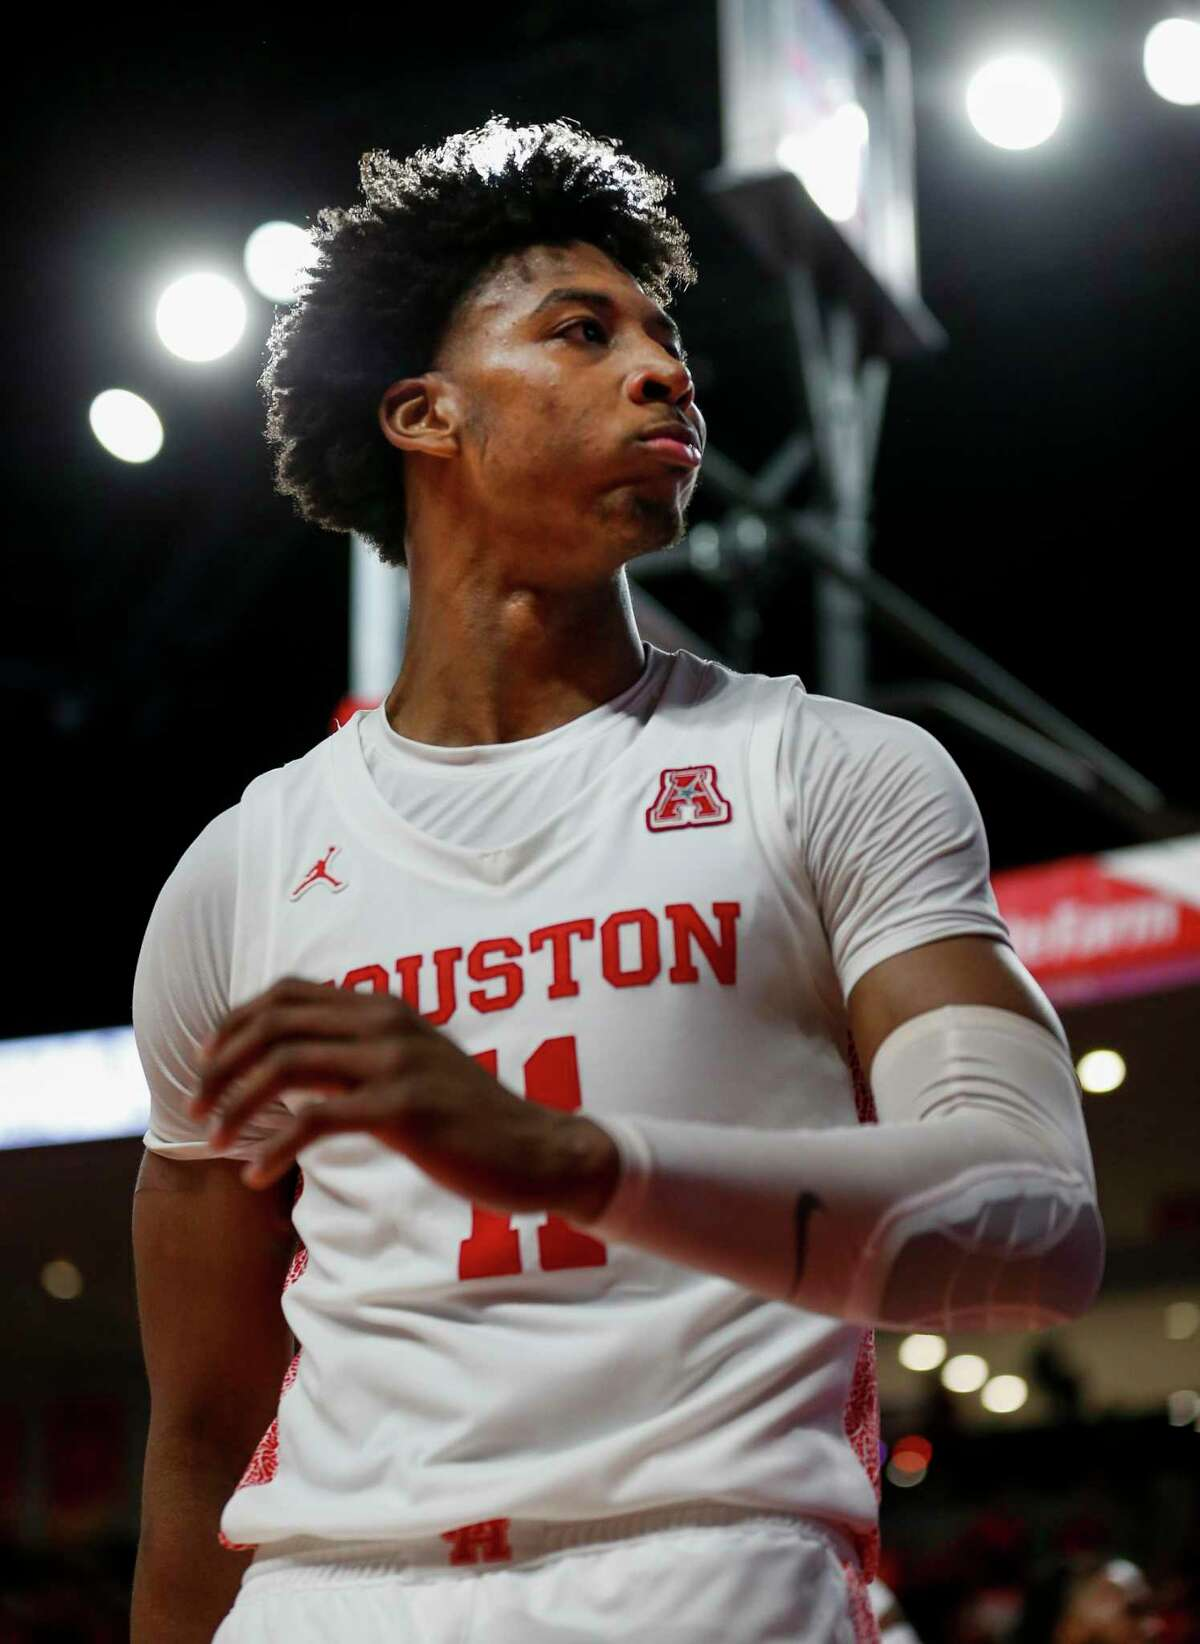 Houston Cougars guard Nate Hinton (11) after scoring against the UCF Knights during the second half of an NCAA game at the Fertitta Center Friday, Jan. 3, 2020, in Houston. The Cougars won 78-63.